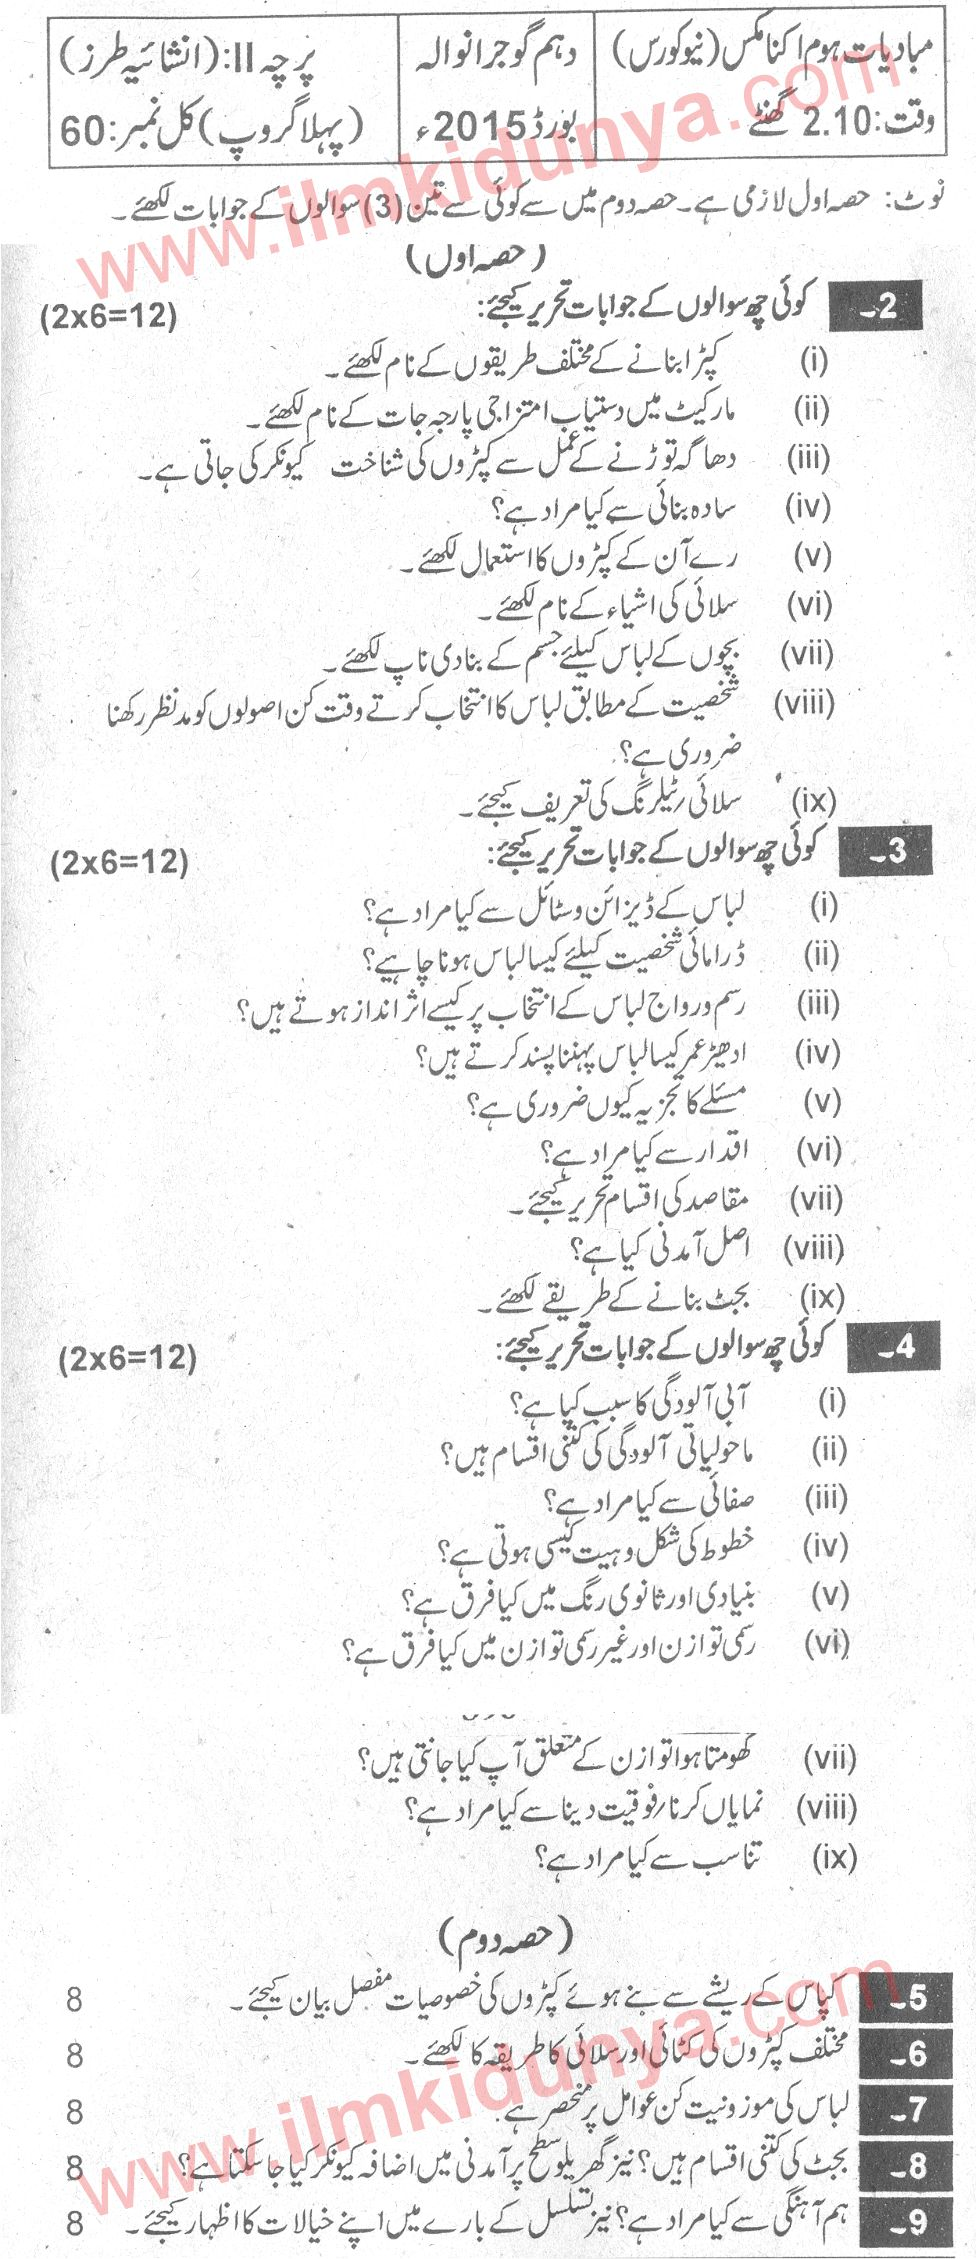 Past Papers 2015 Gujranwala Board 10th Class Home Economics Subjective Group 1 U